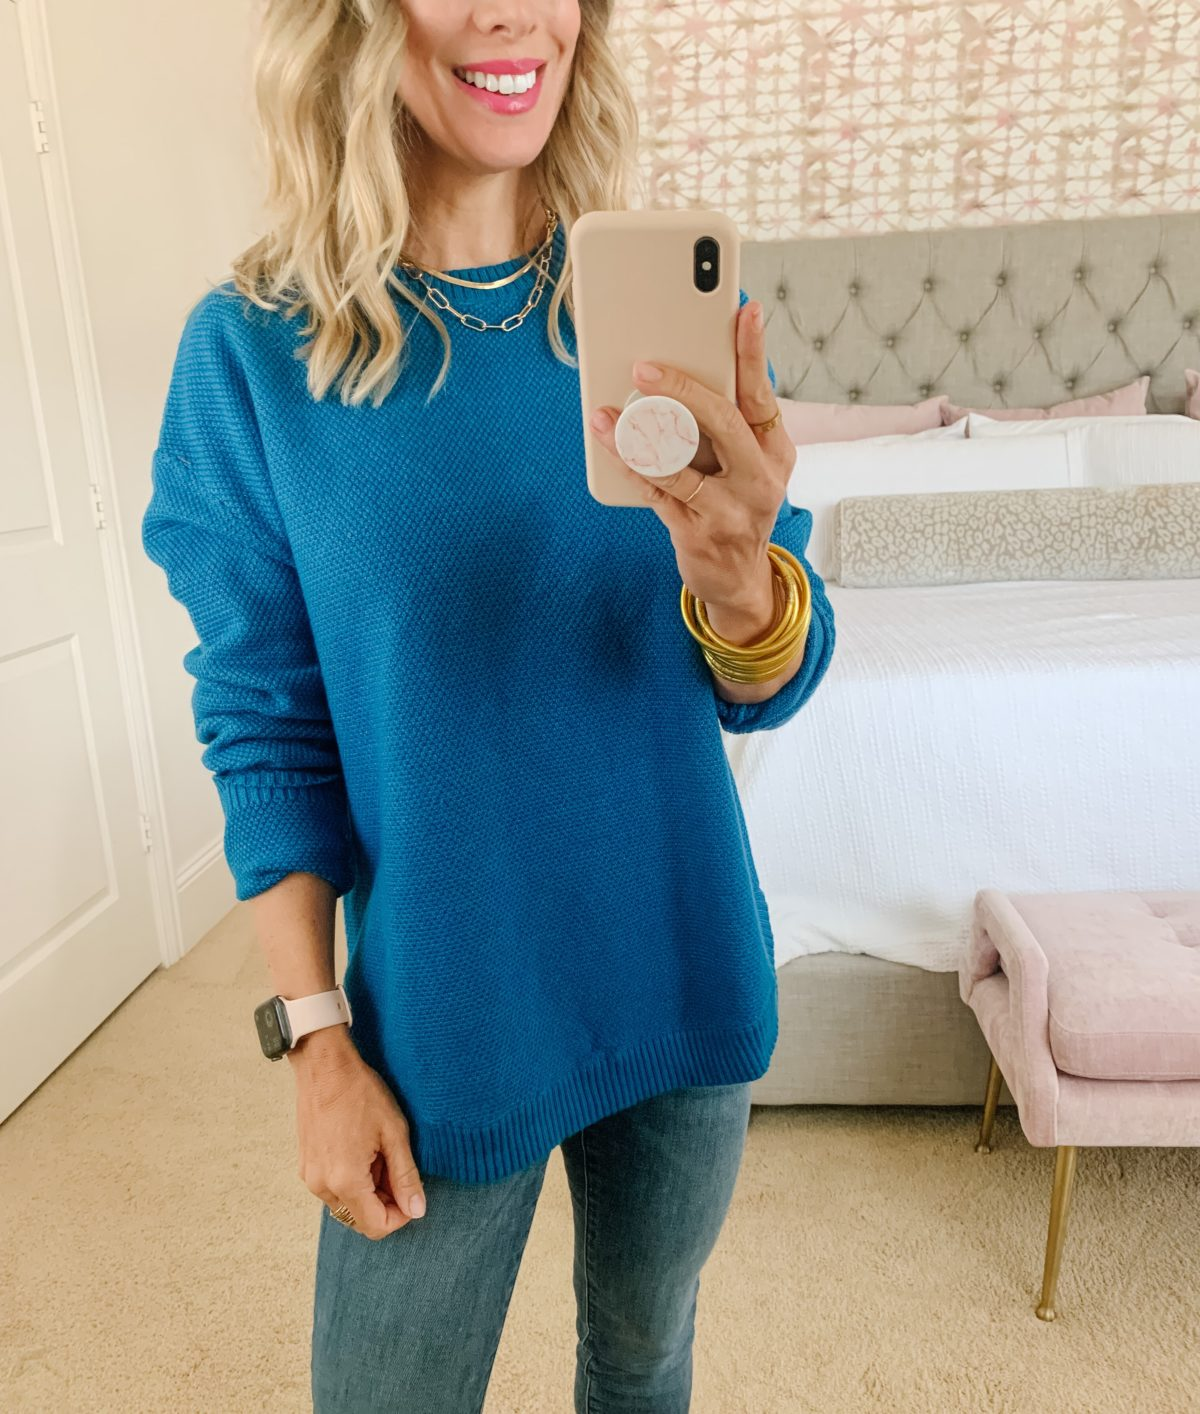 Amazon Fashion Finds, Sweater, Jeans, Booties